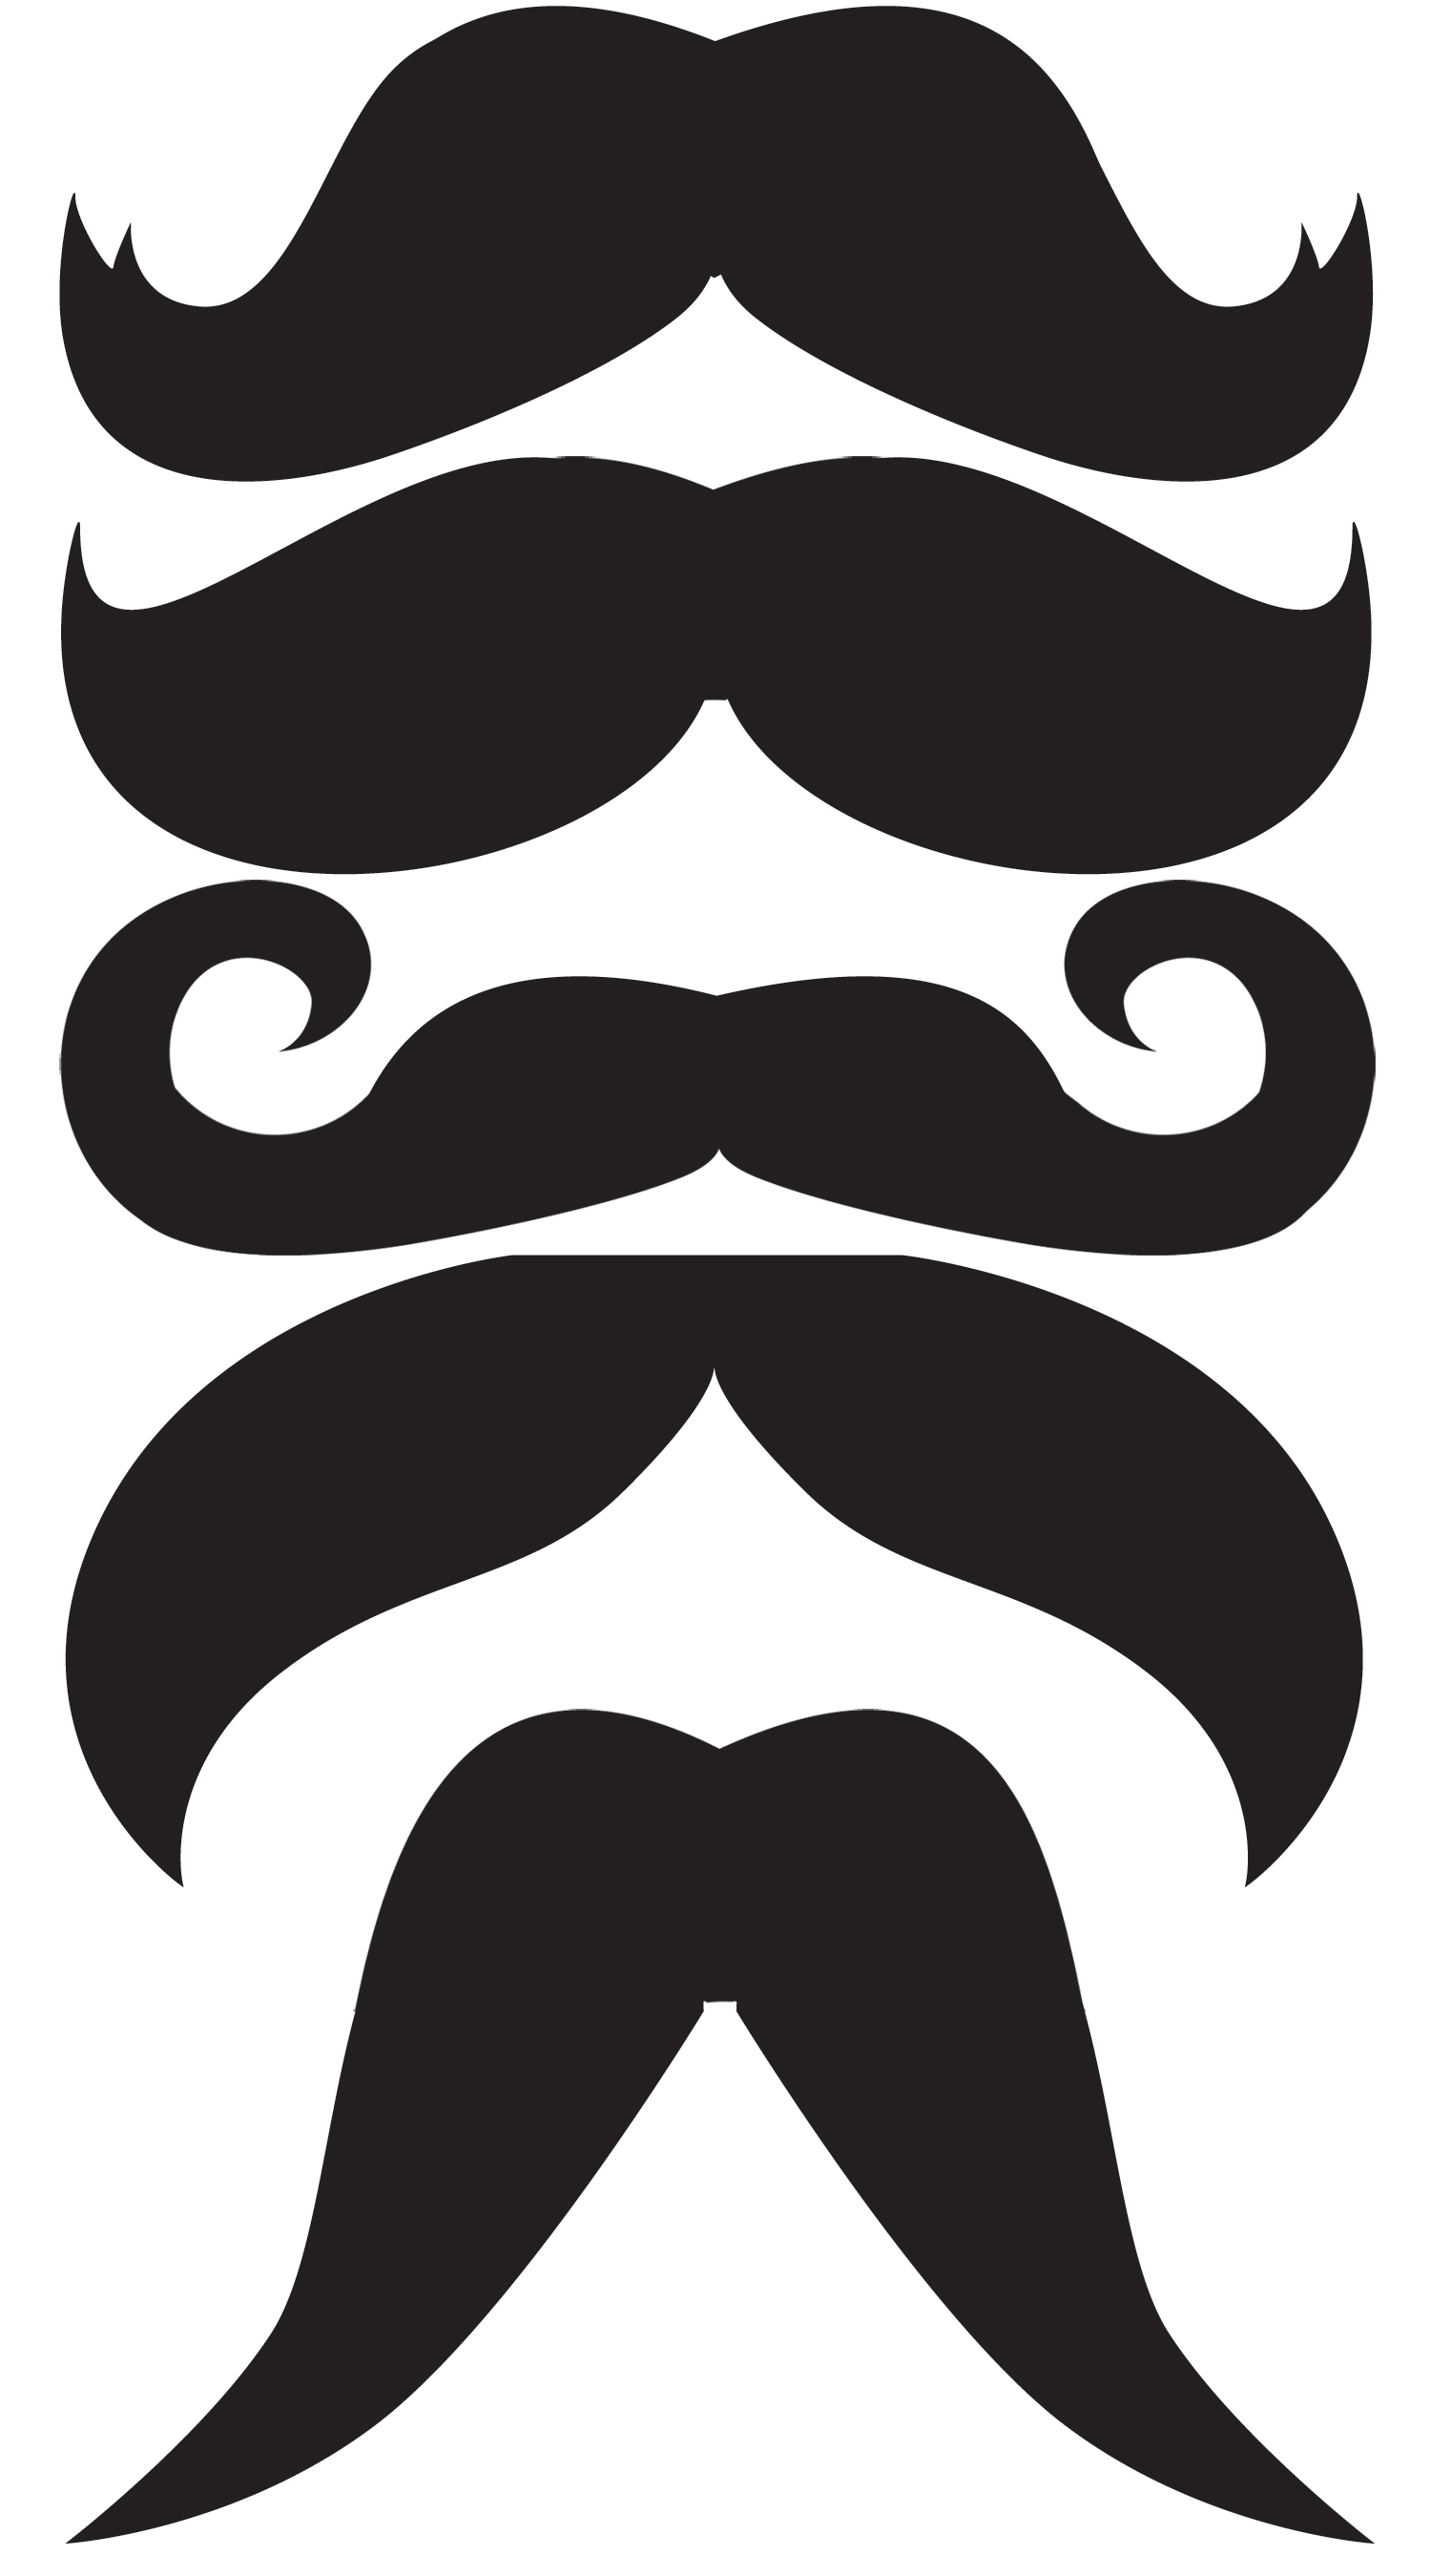 Clipart mustache photo booth. Printables library clip art